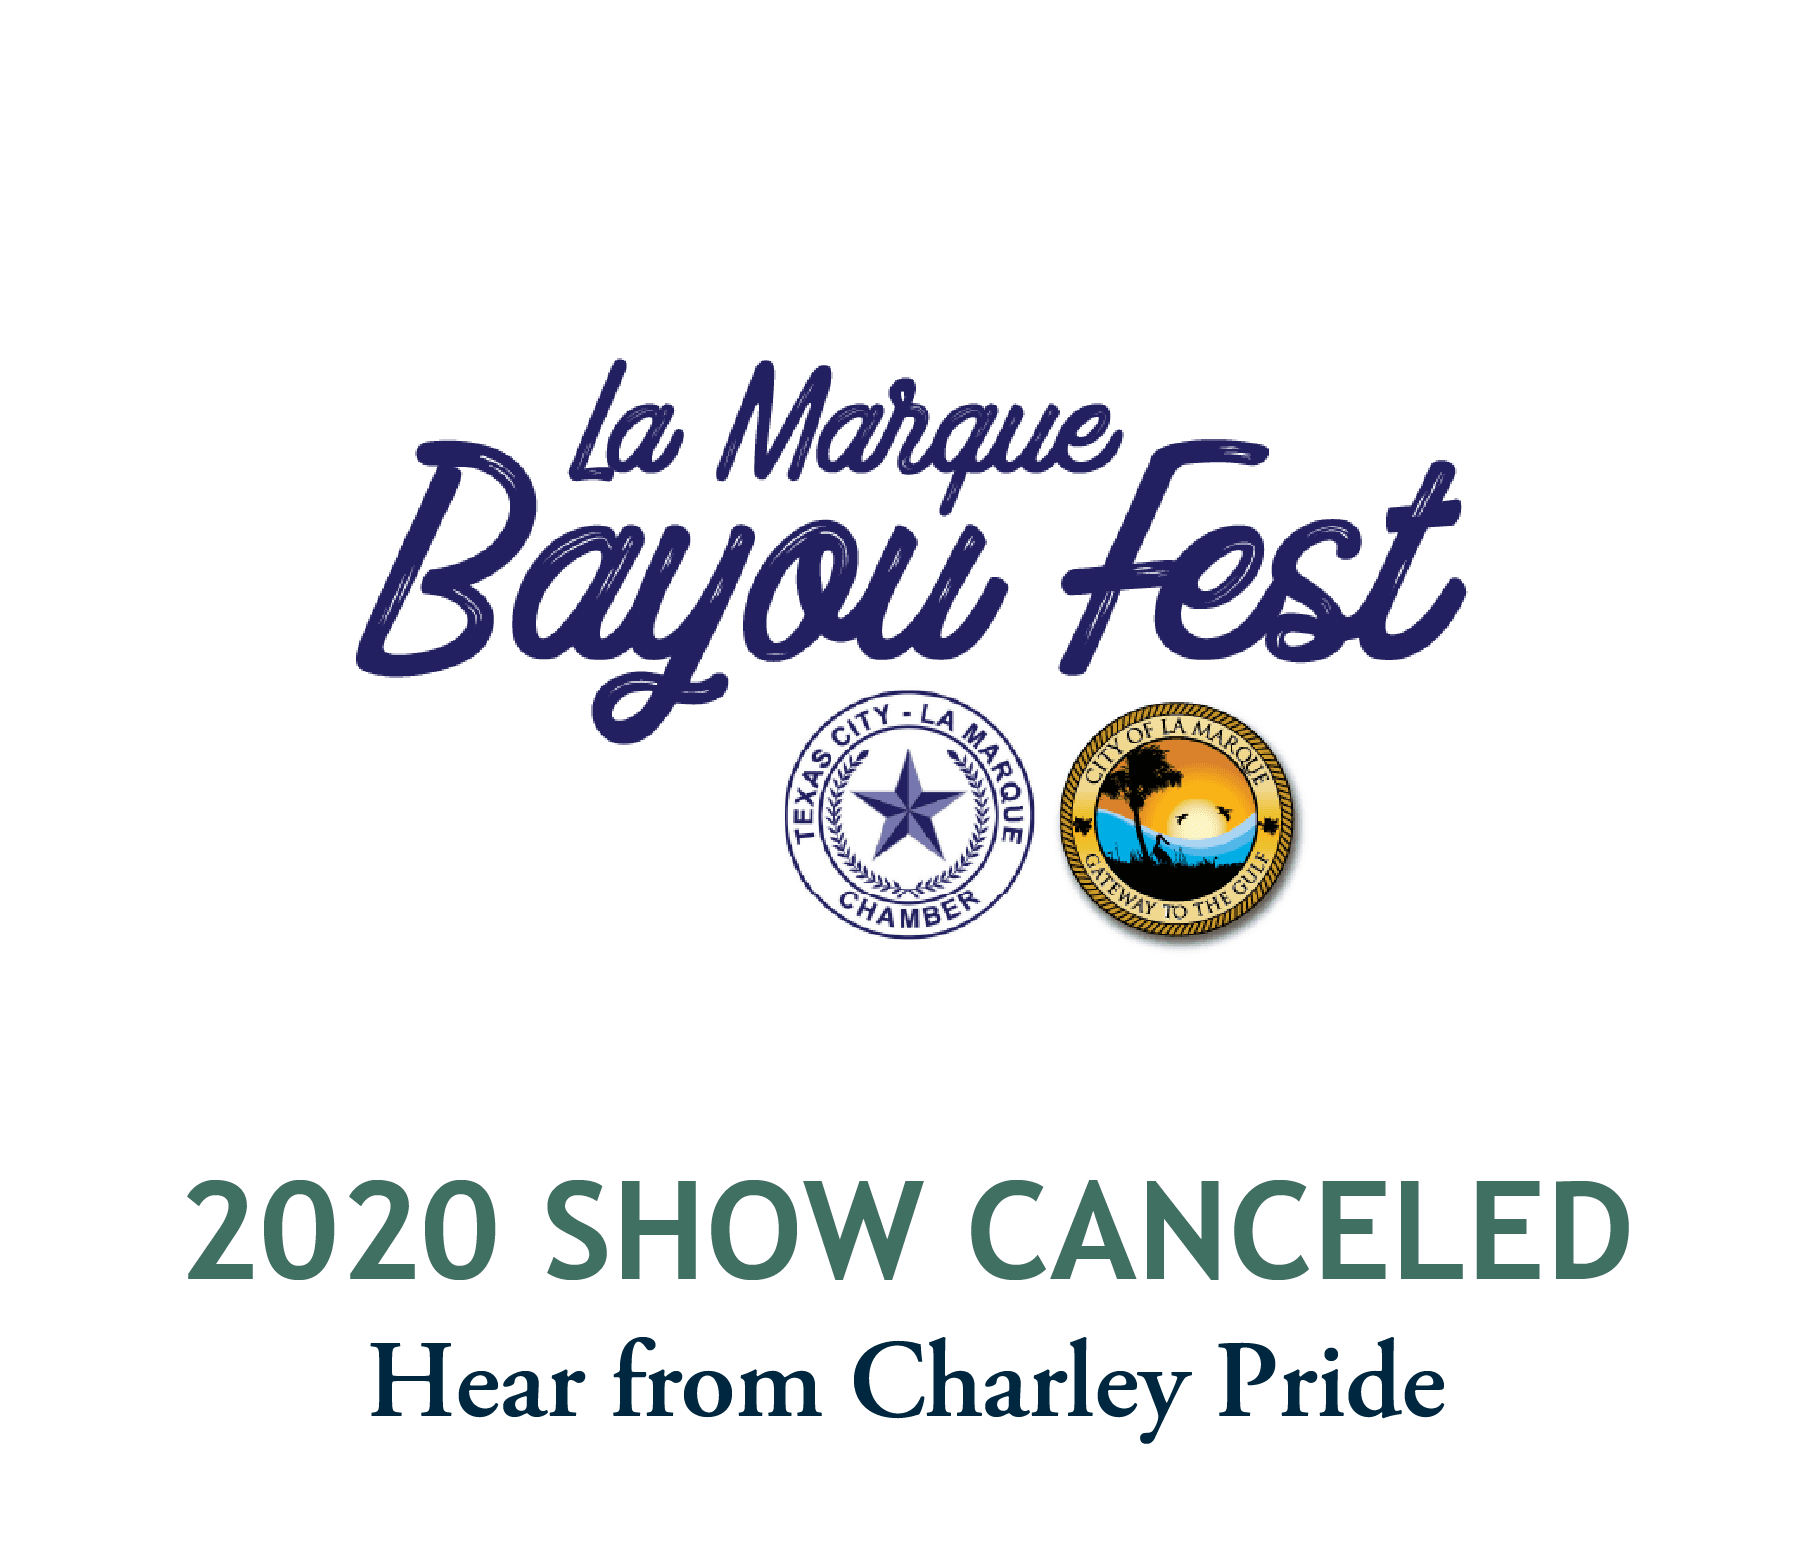 LMBF 2020 Canceled. Click for video message from Charley Pride.